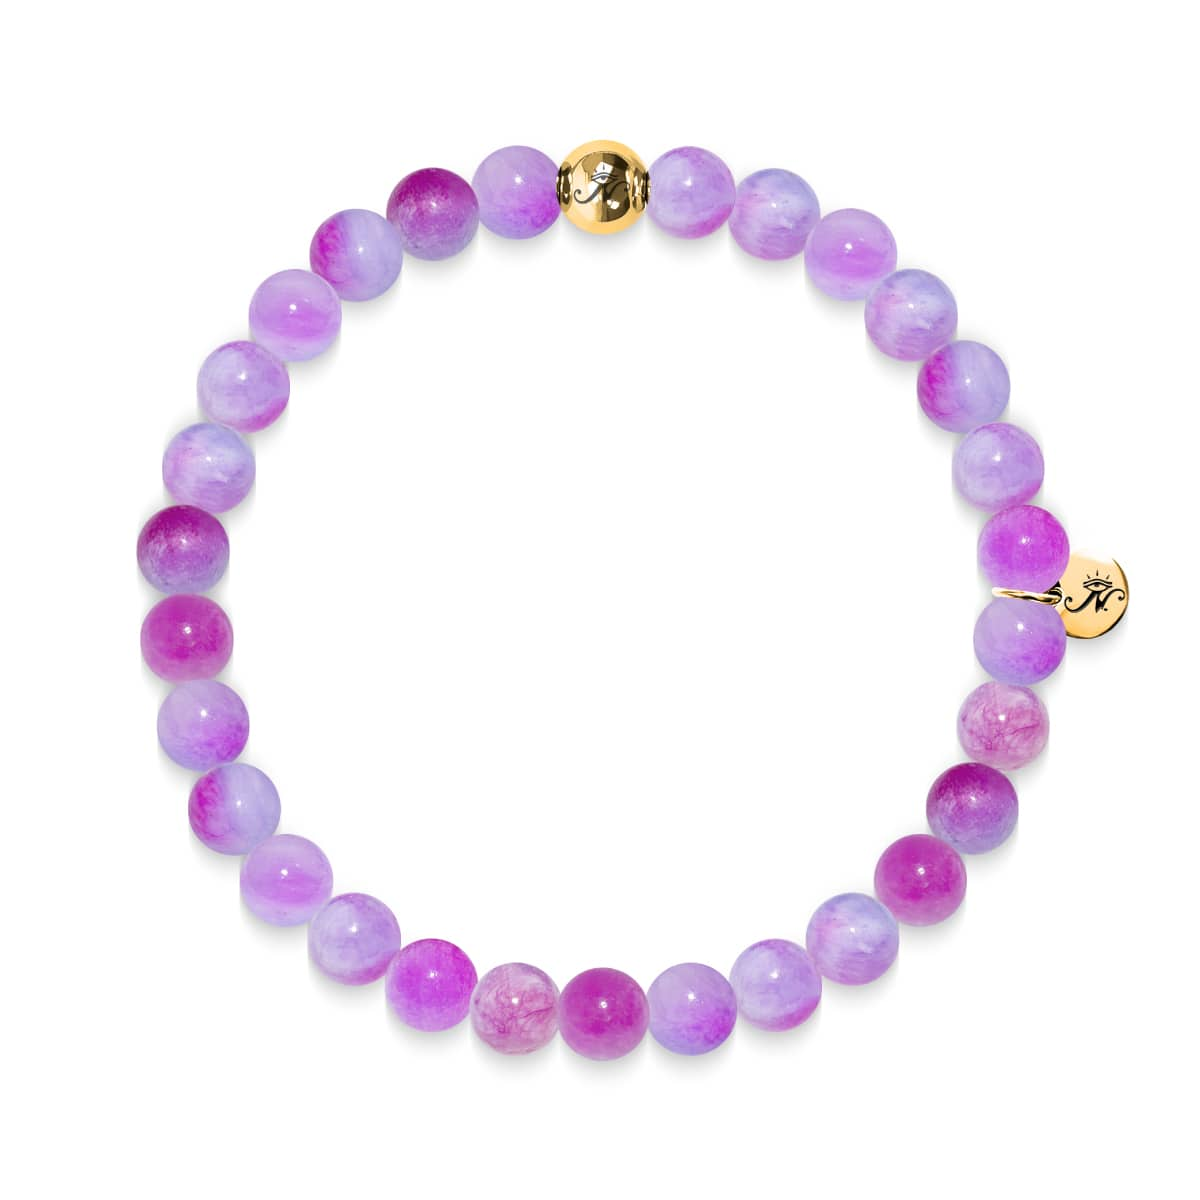 L'amour | Bracelet en jade multicolore Gold Essence